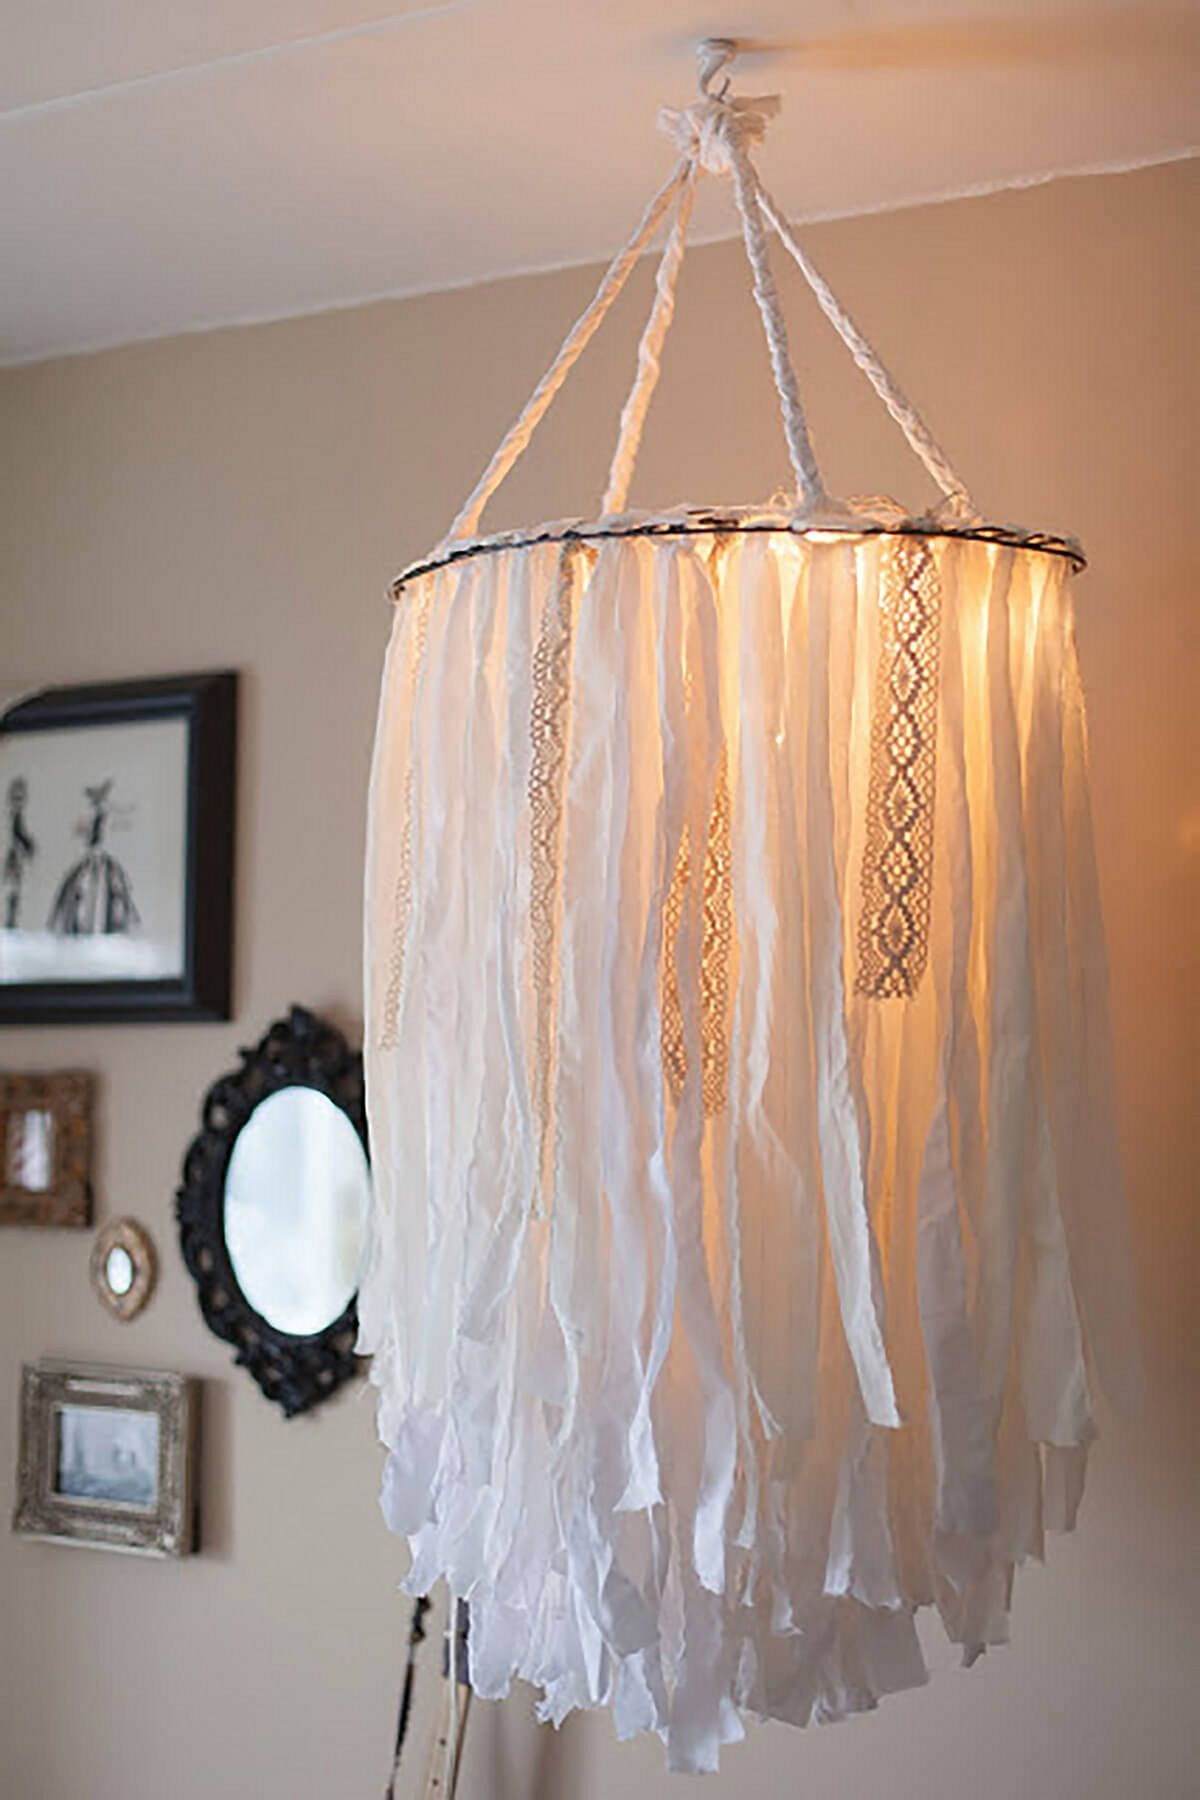 15 Best DIY Homemade Decorative Lamps Ideas You Need To Try  #DecorativeLampsIdeas #DIYHomema... images